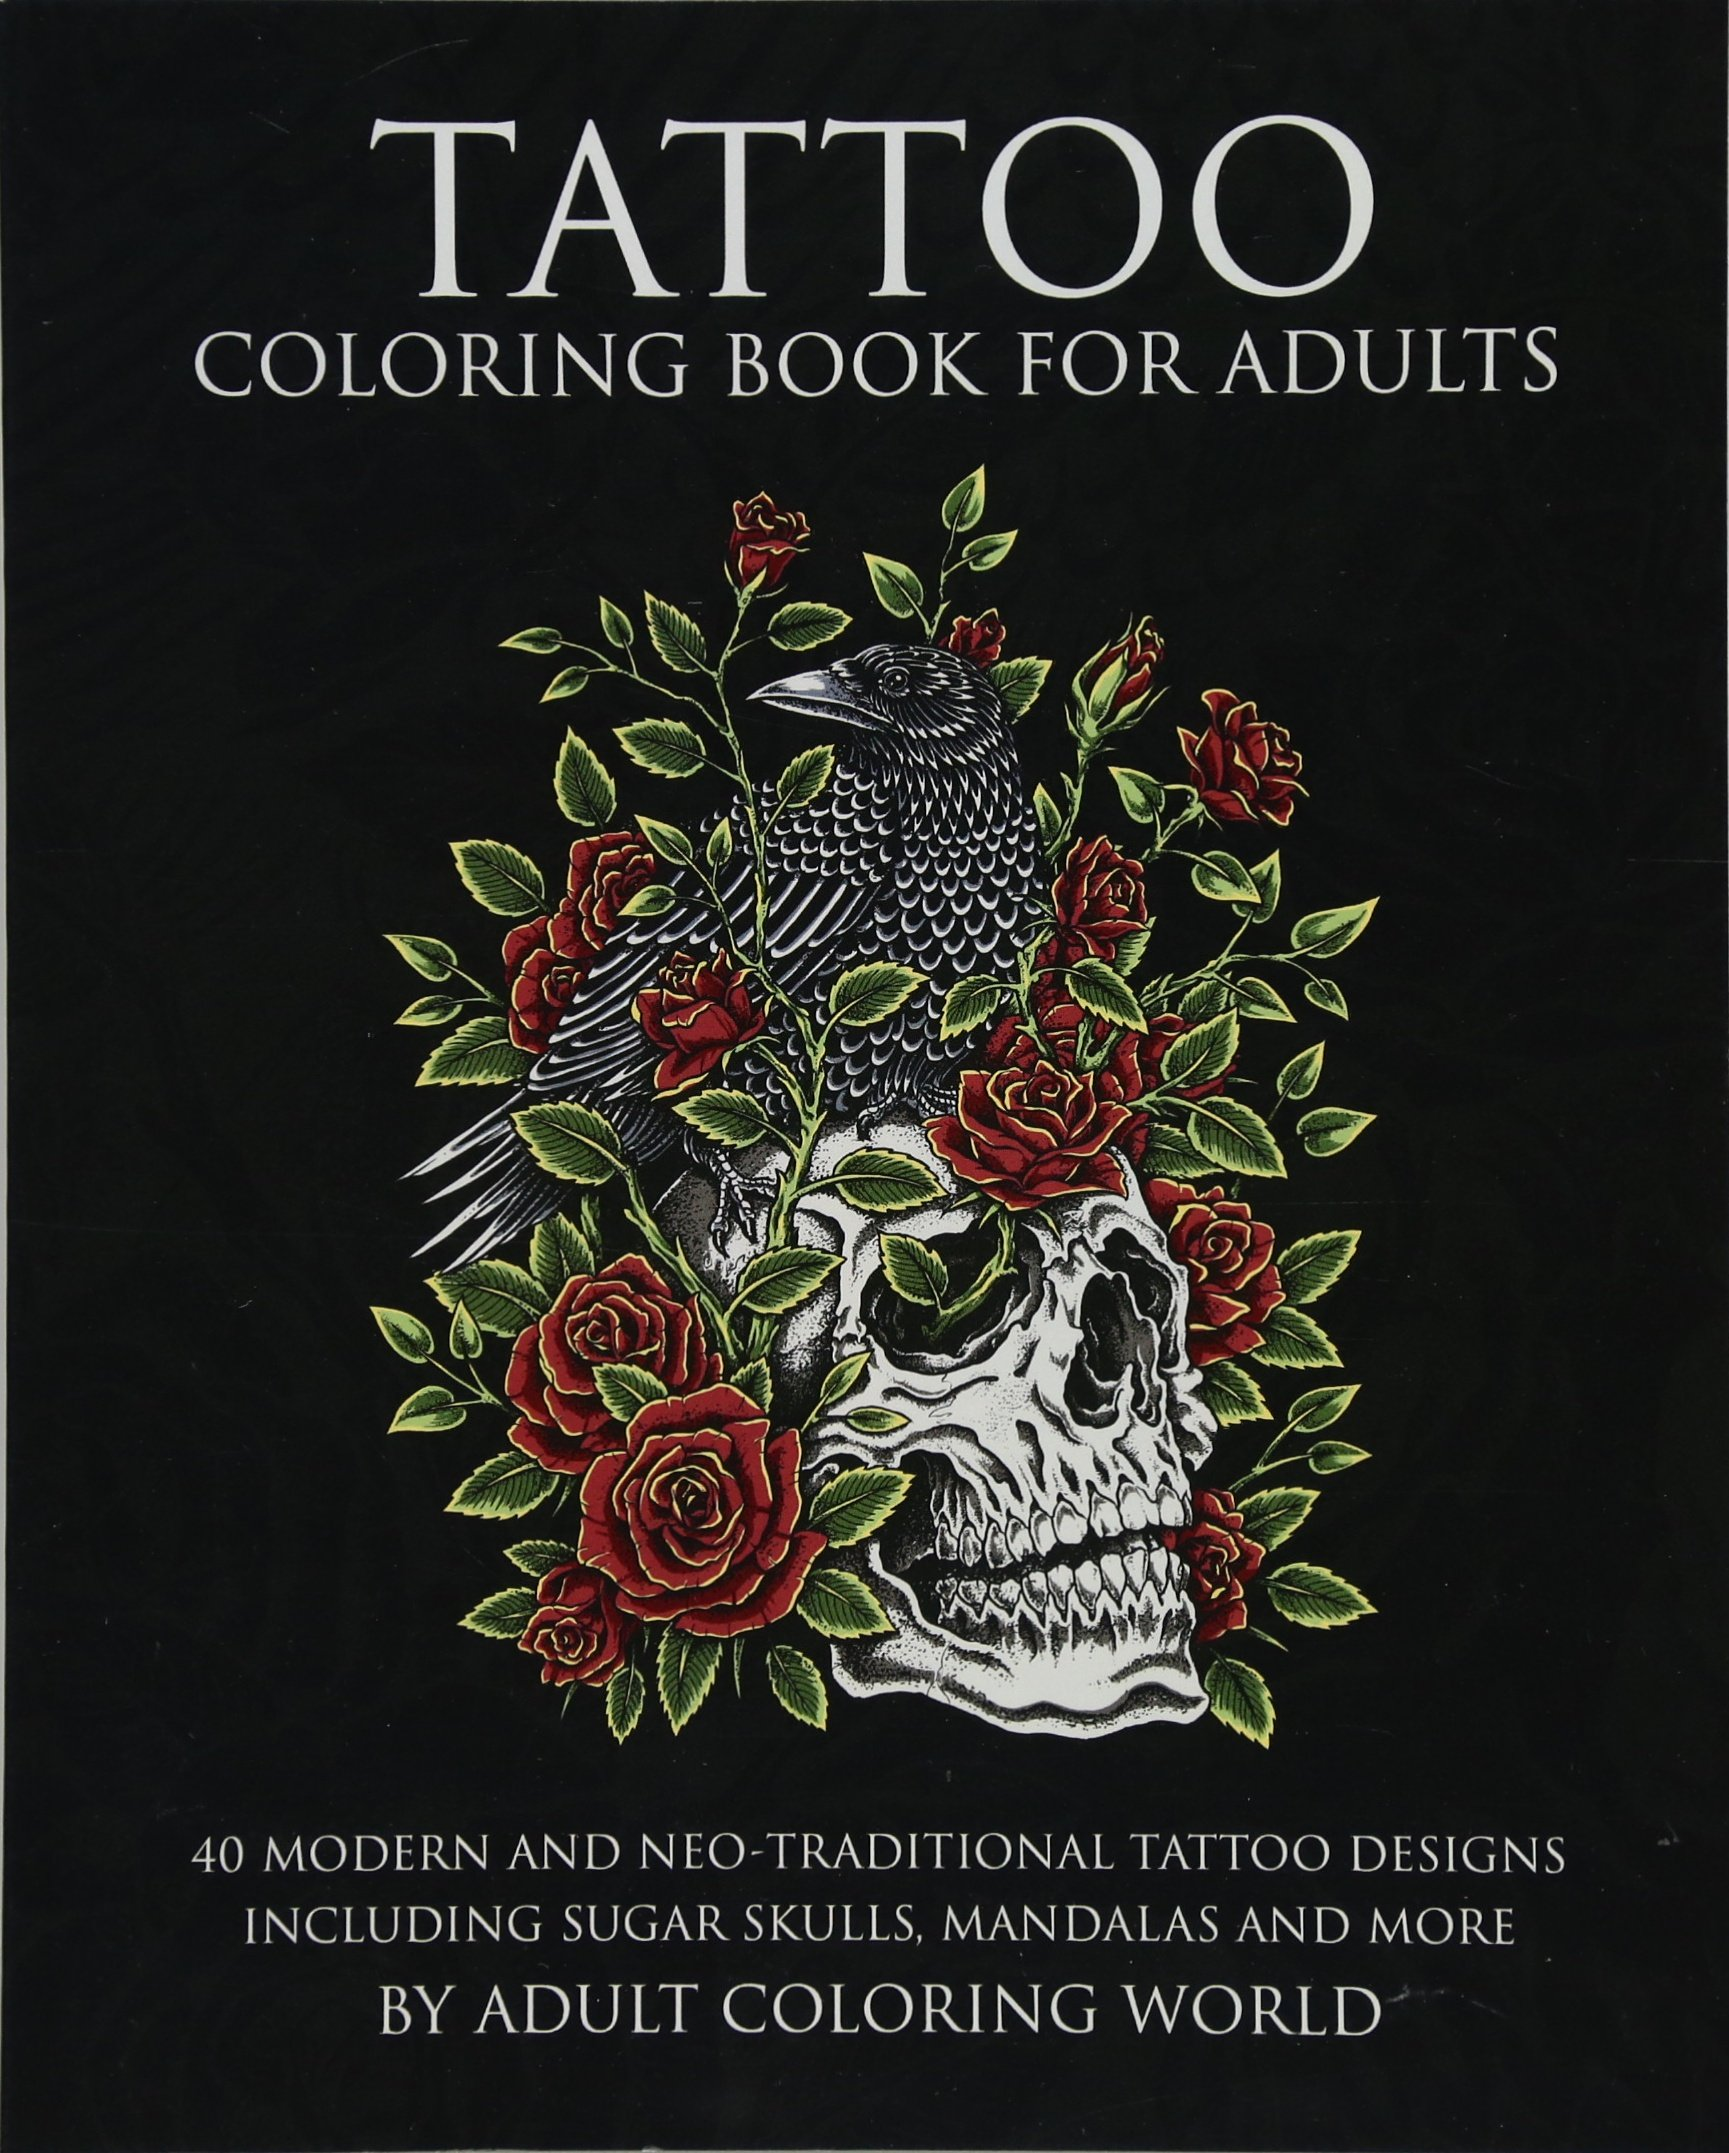 Amazon.com: Tattoo Coloring Book for Adults: 40 Modern and Neo ...